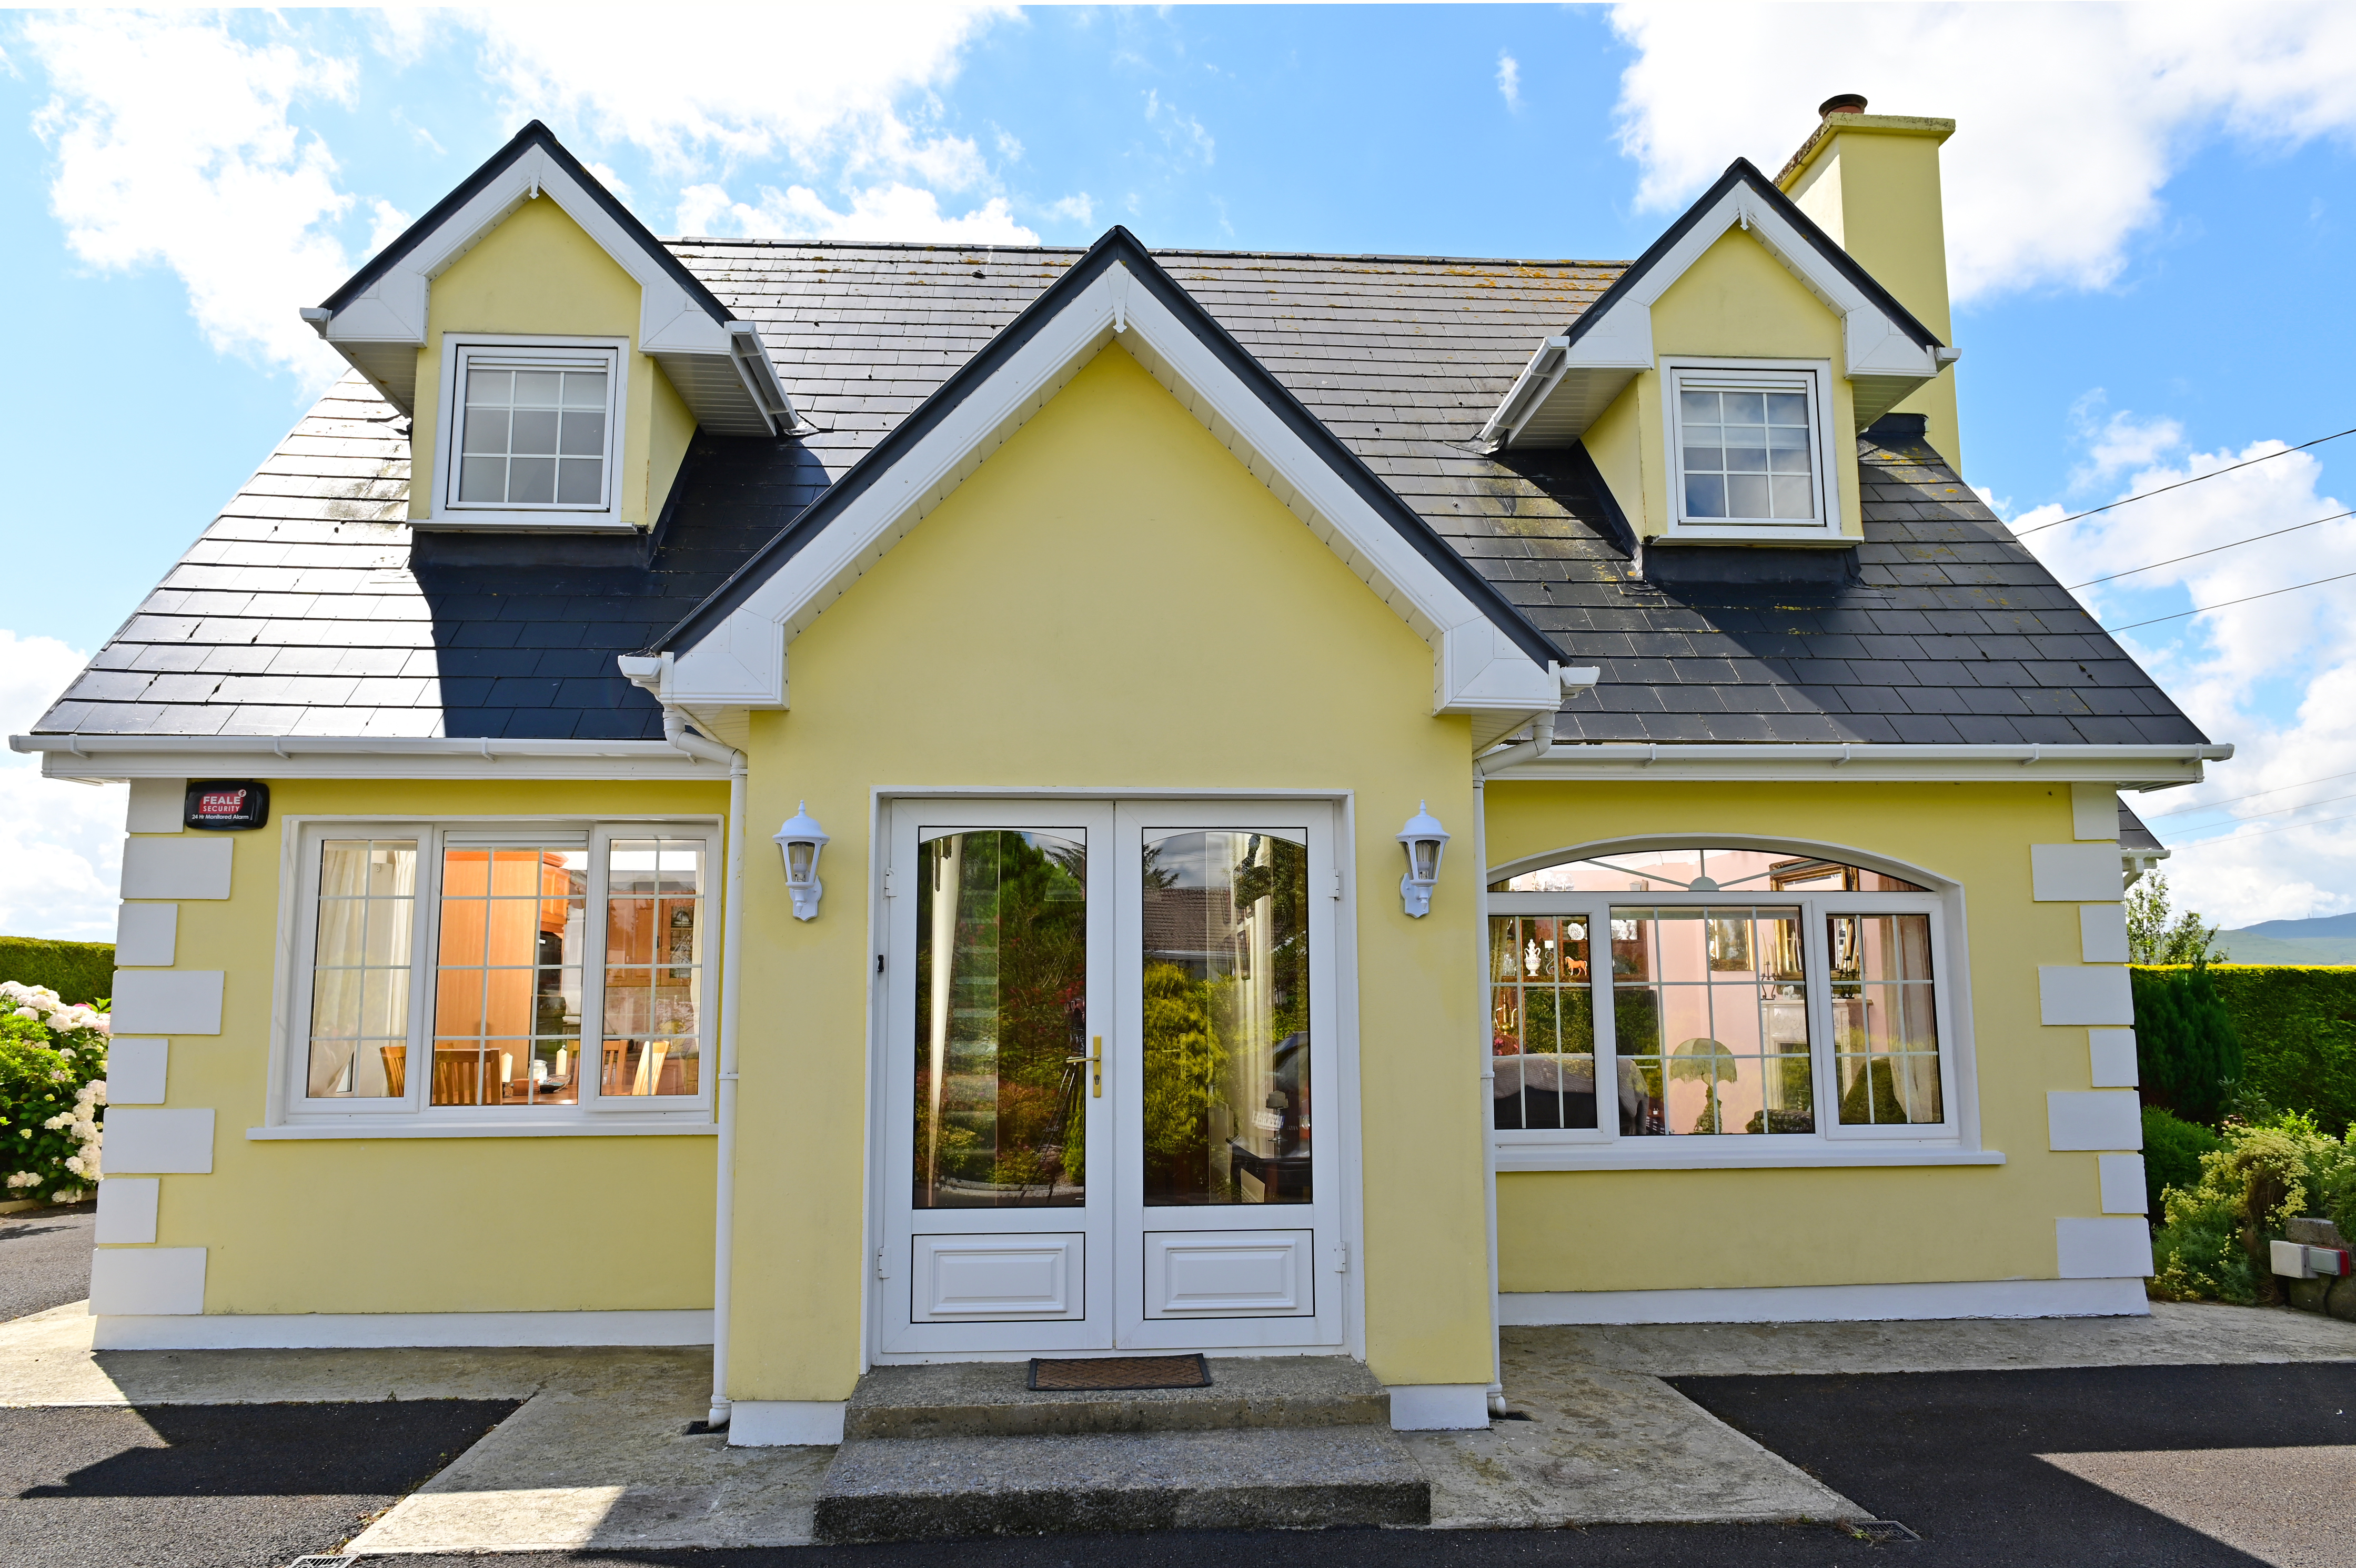 Ballinorig South, Tralee, Co. Kerry. V92TRT6